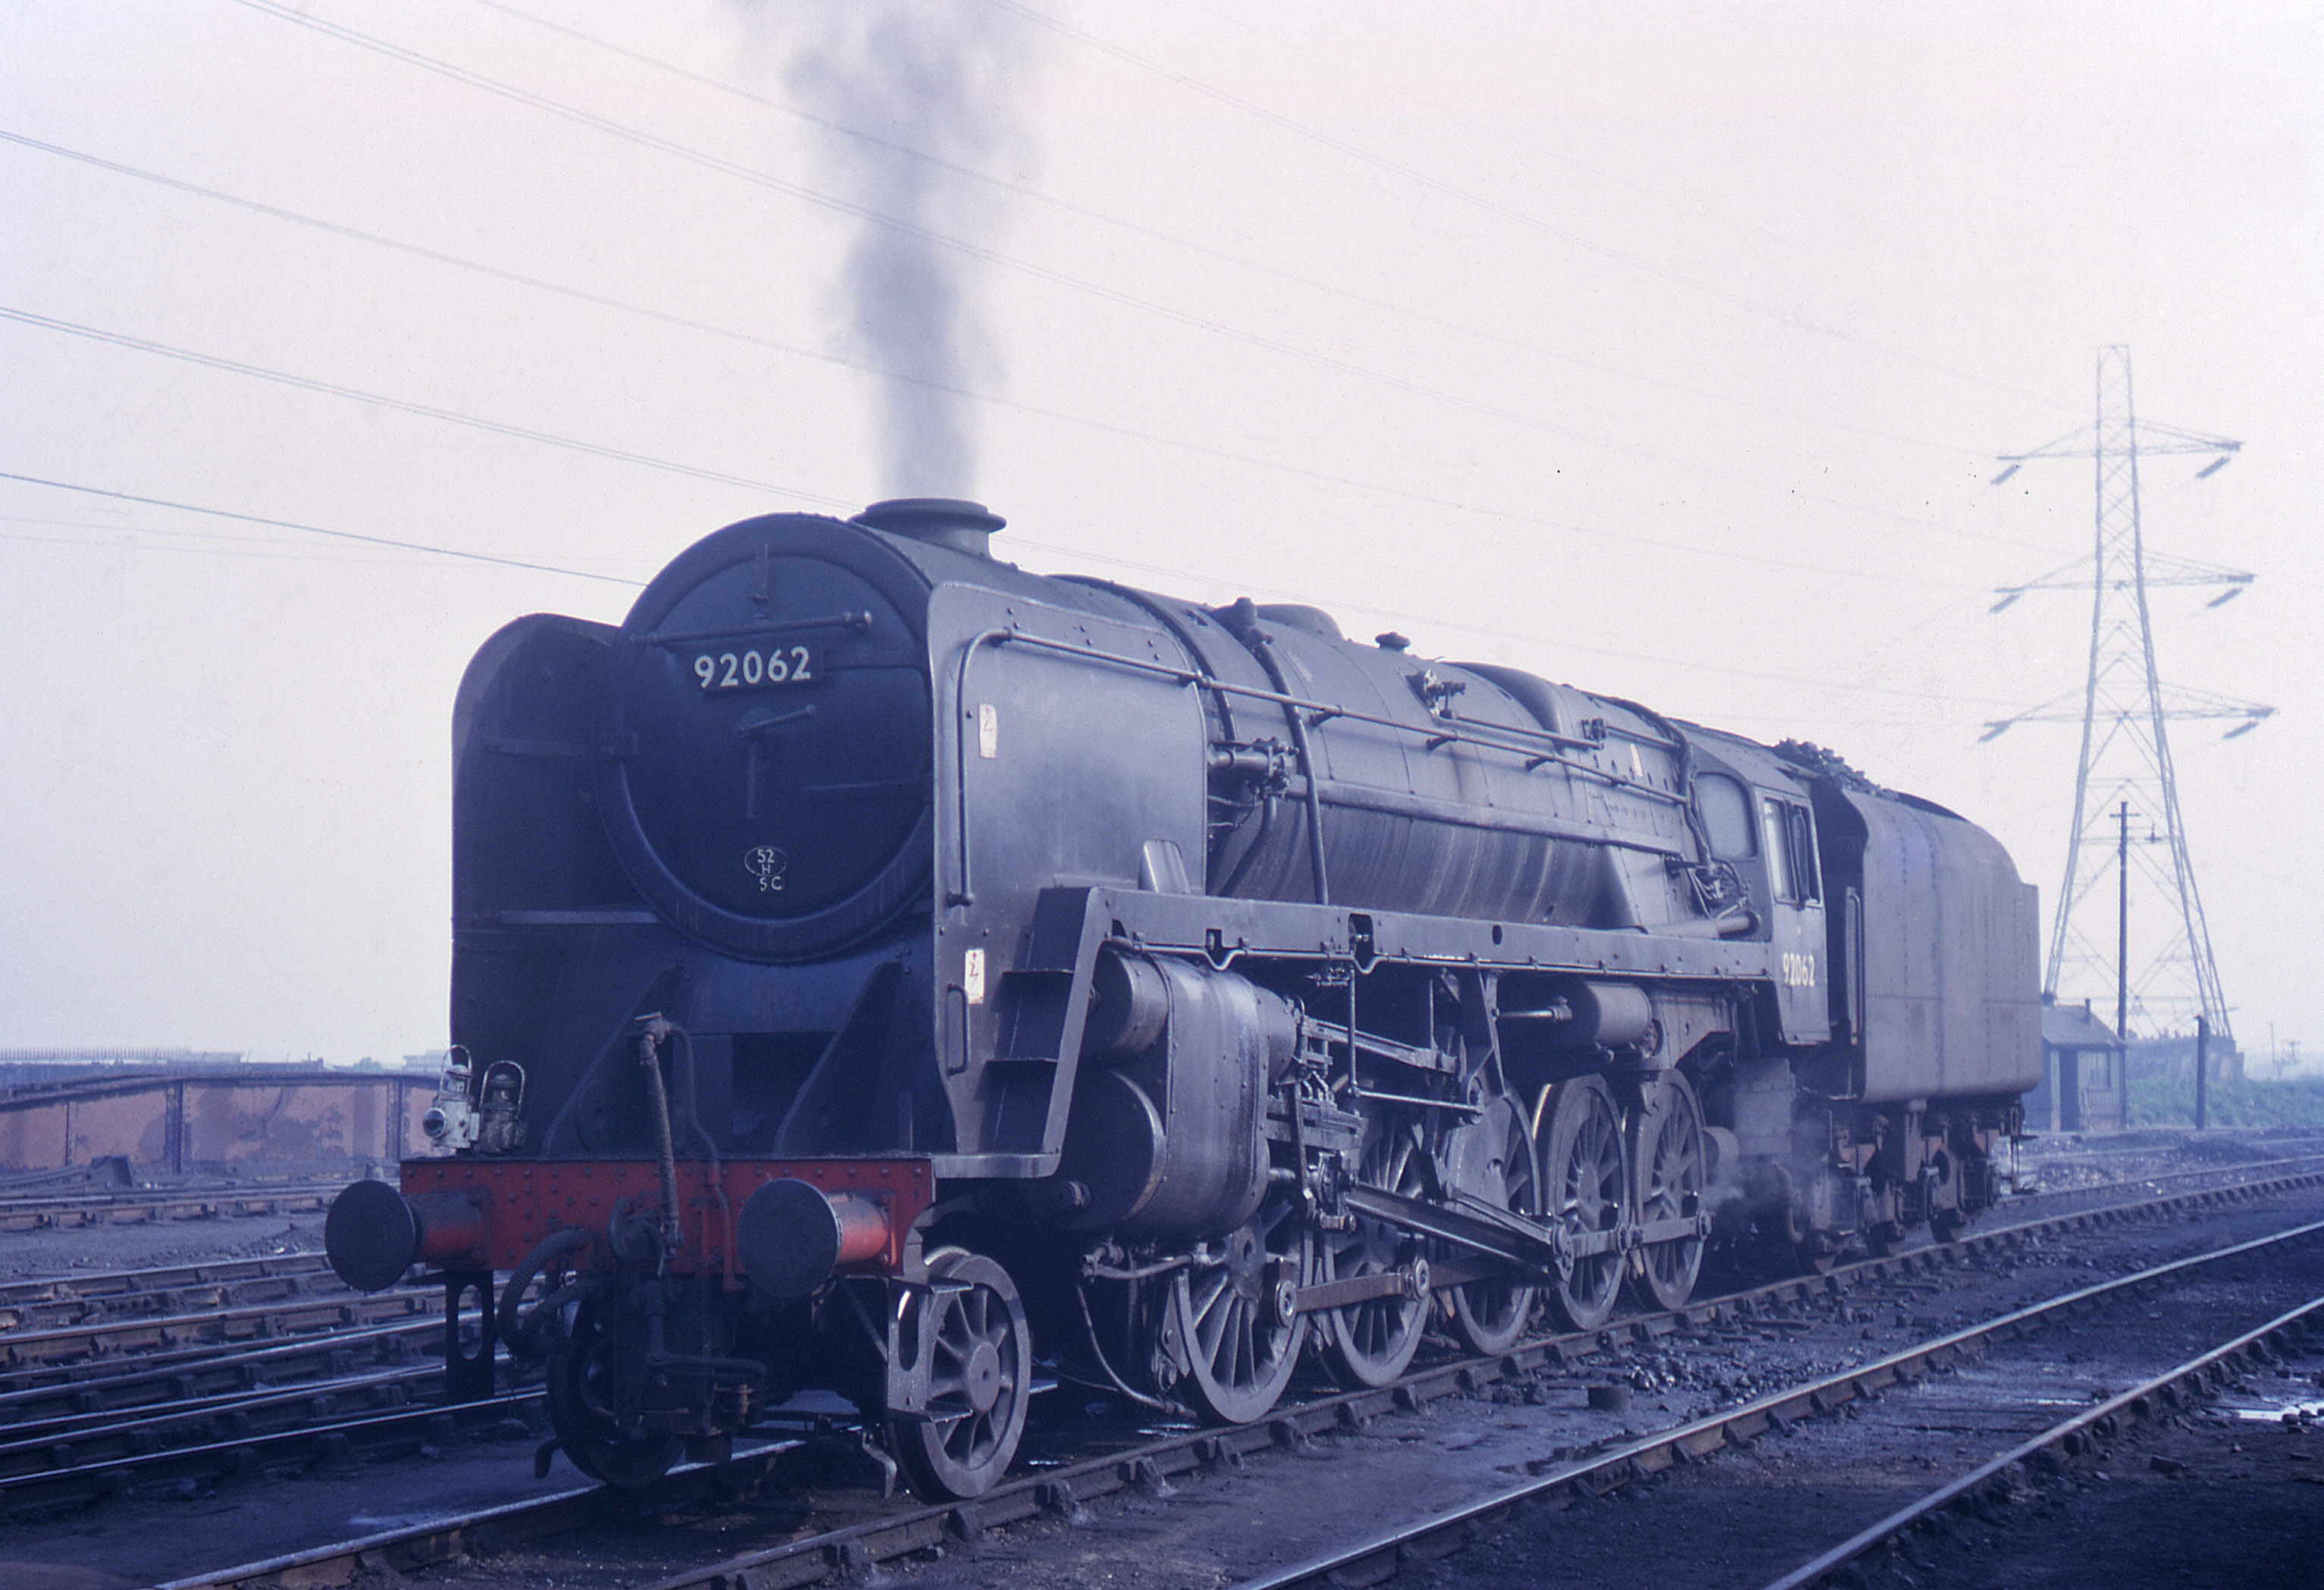 One of those fitted with air pumps for working the Consett ore trains